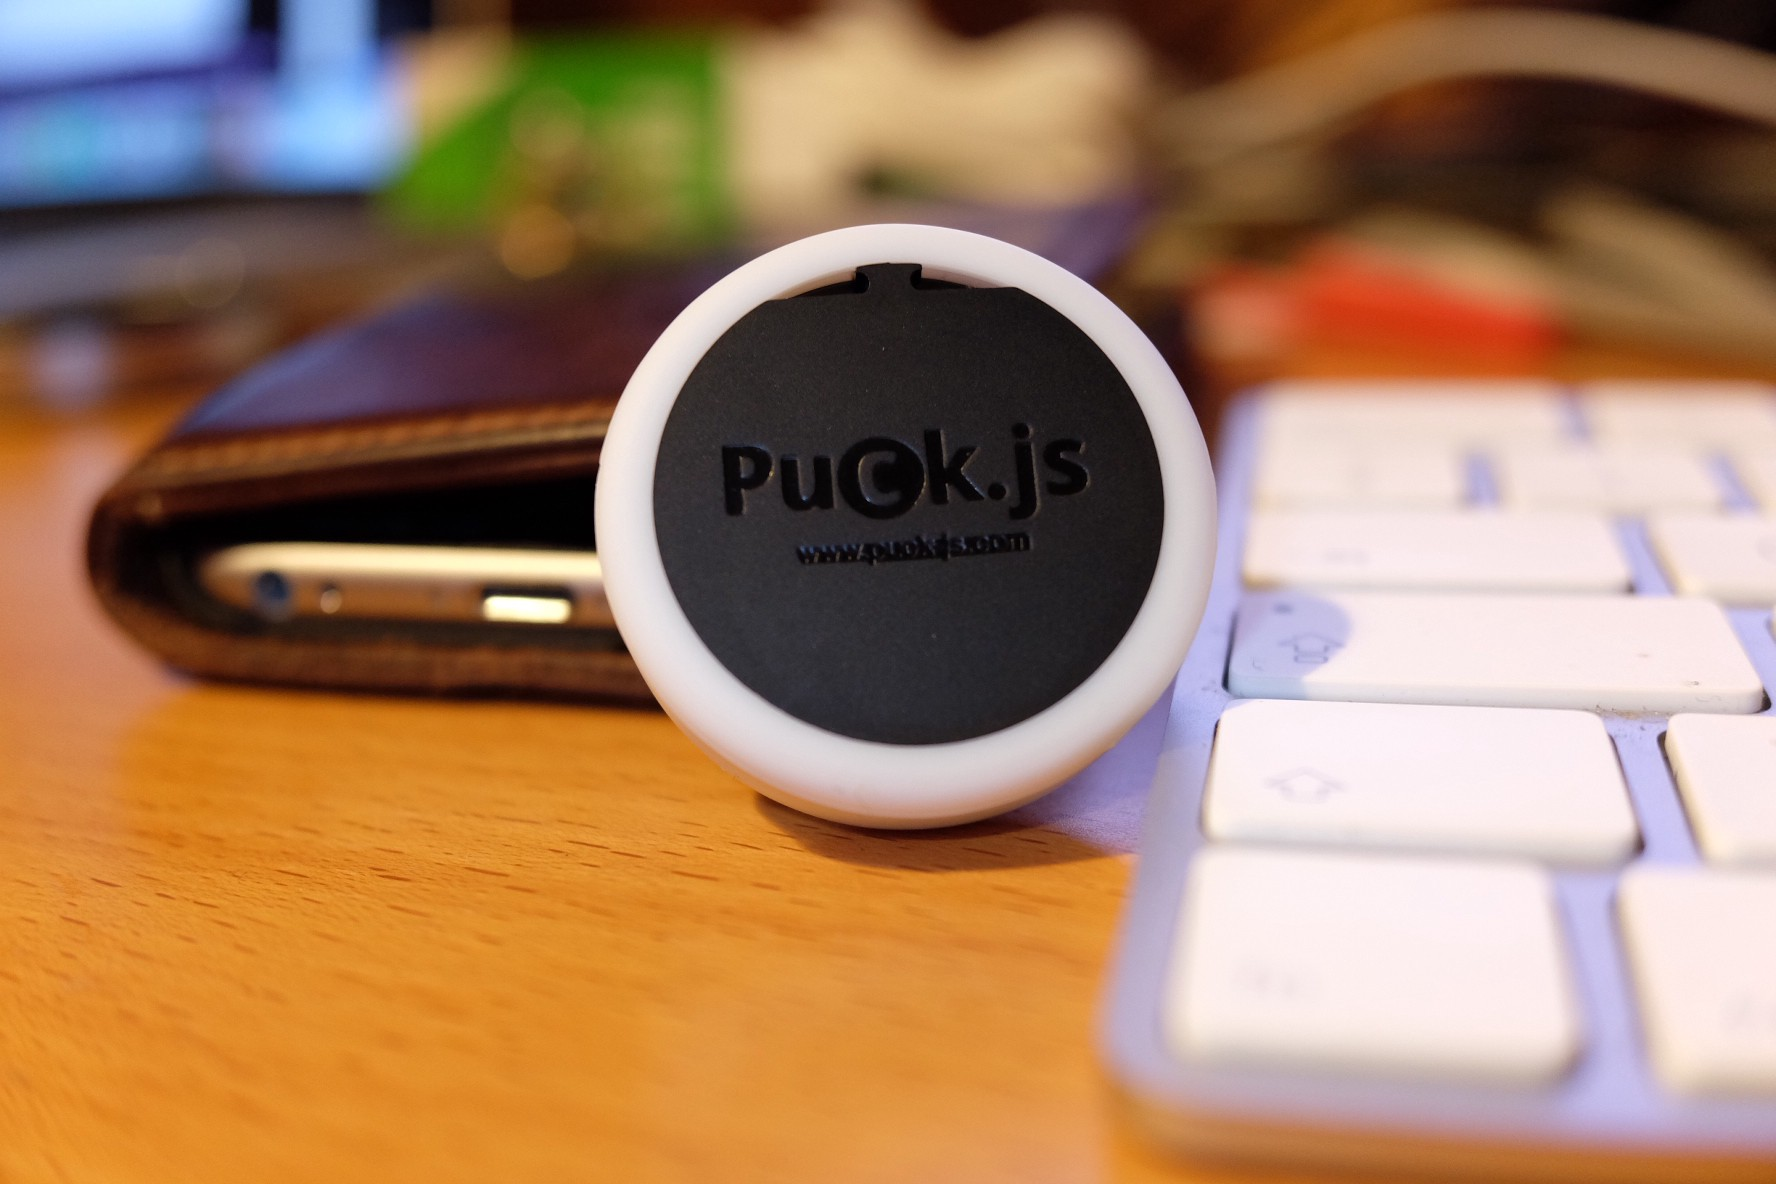 How I Hacked Puck js Into a Bluetooth PowerPoint Presenter